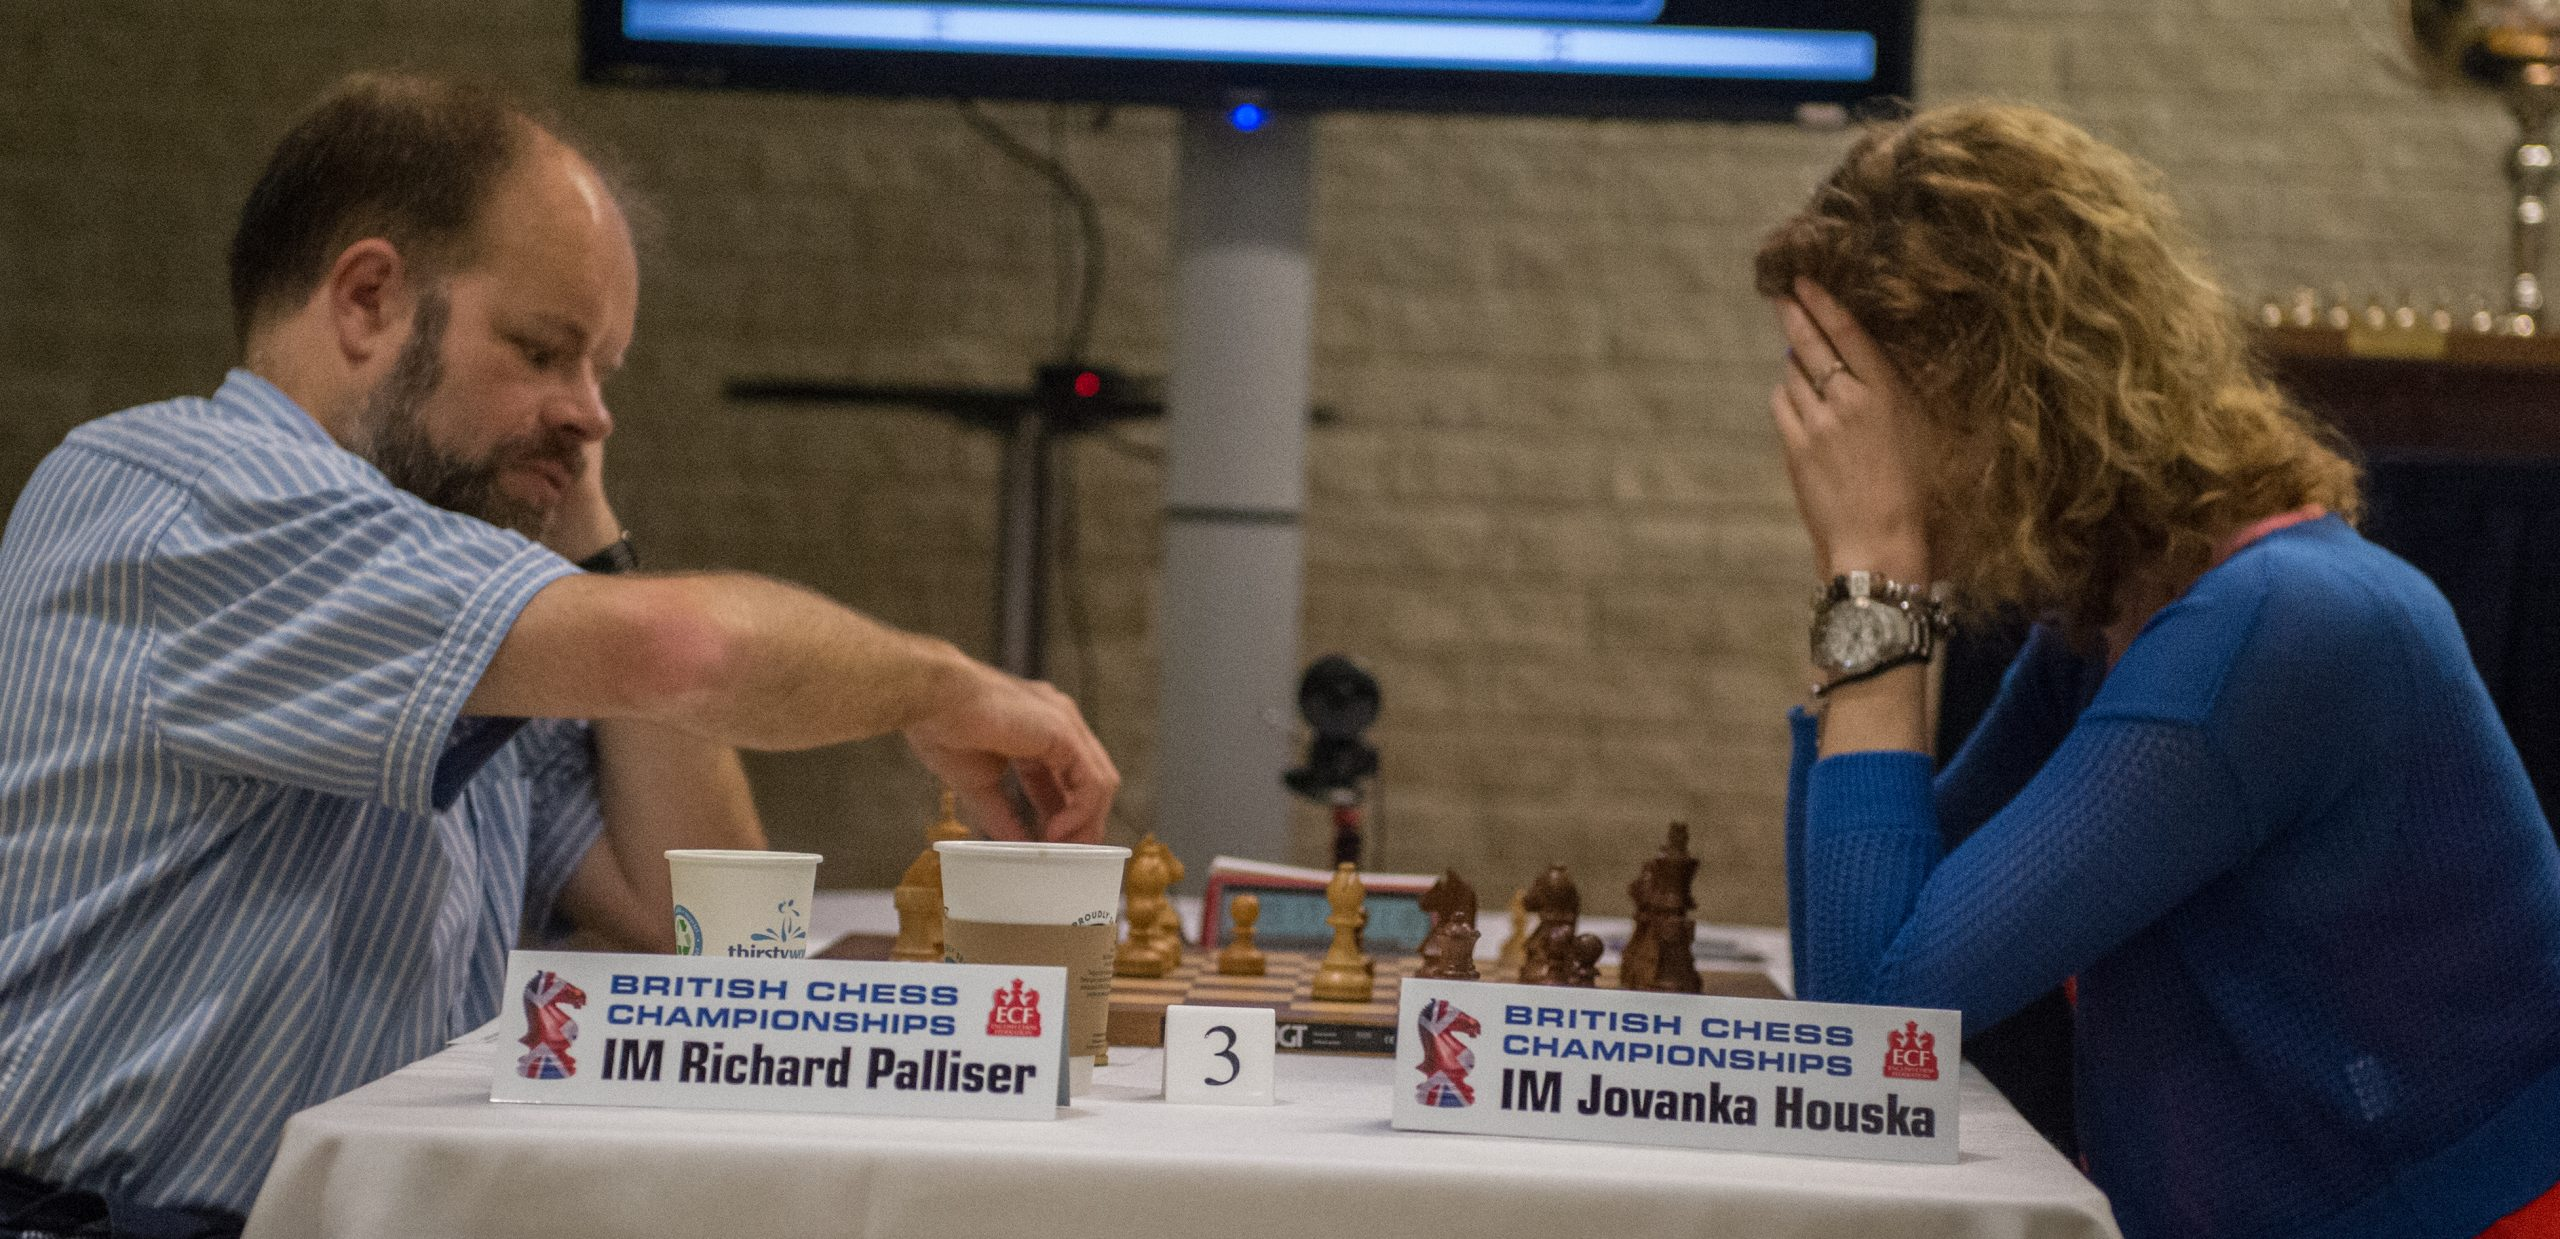 IM Richard Palliser and IM Jovanka Houska, British Championships, 2019